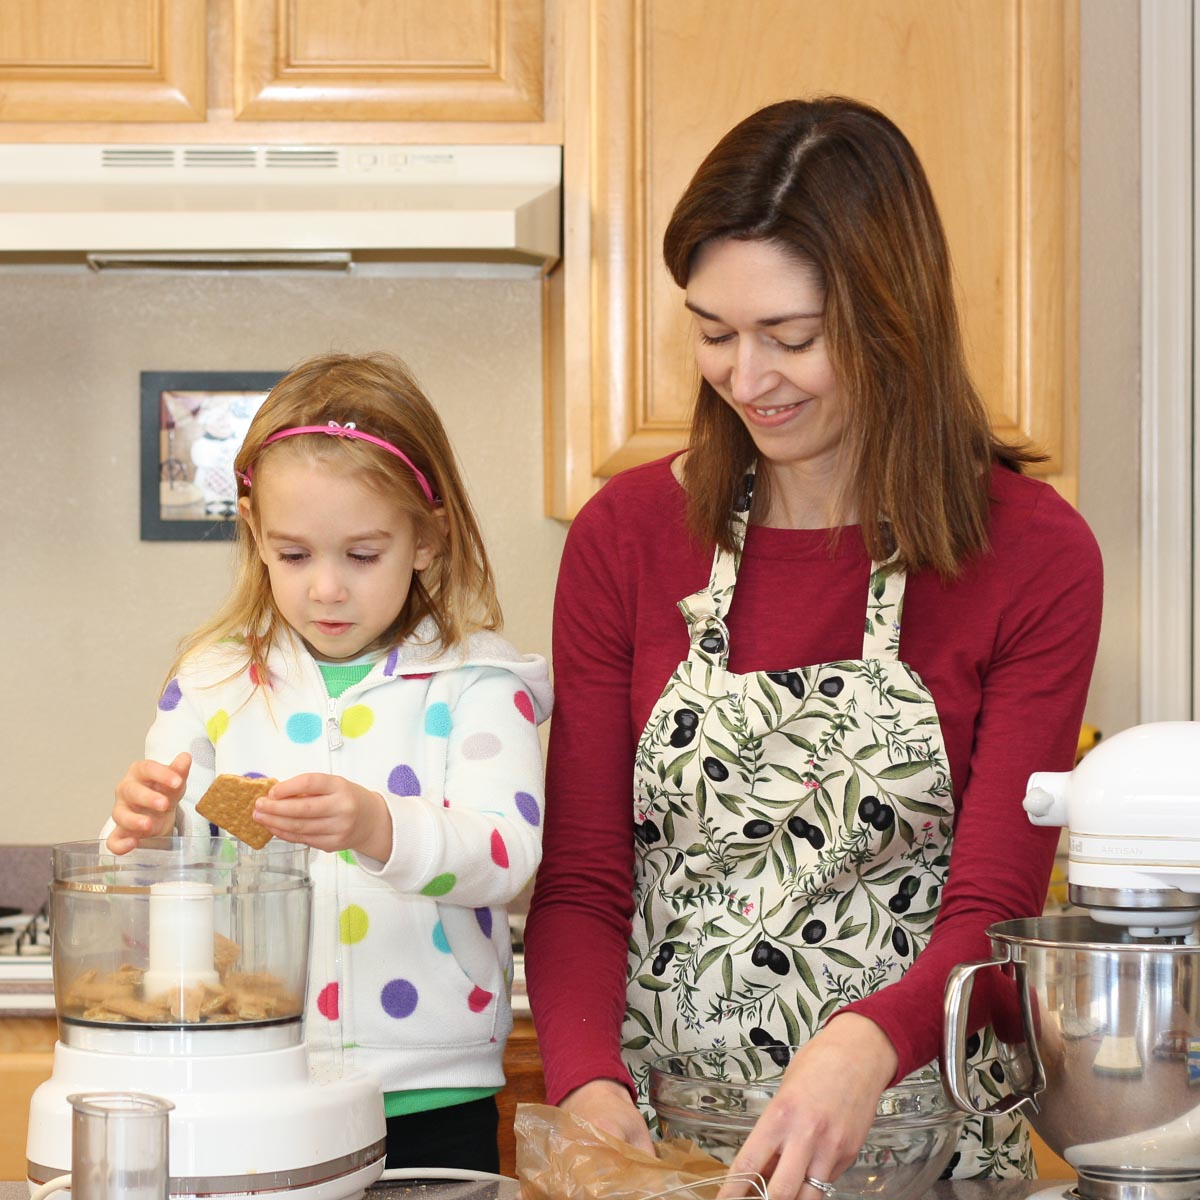 Kristine baking with daughter